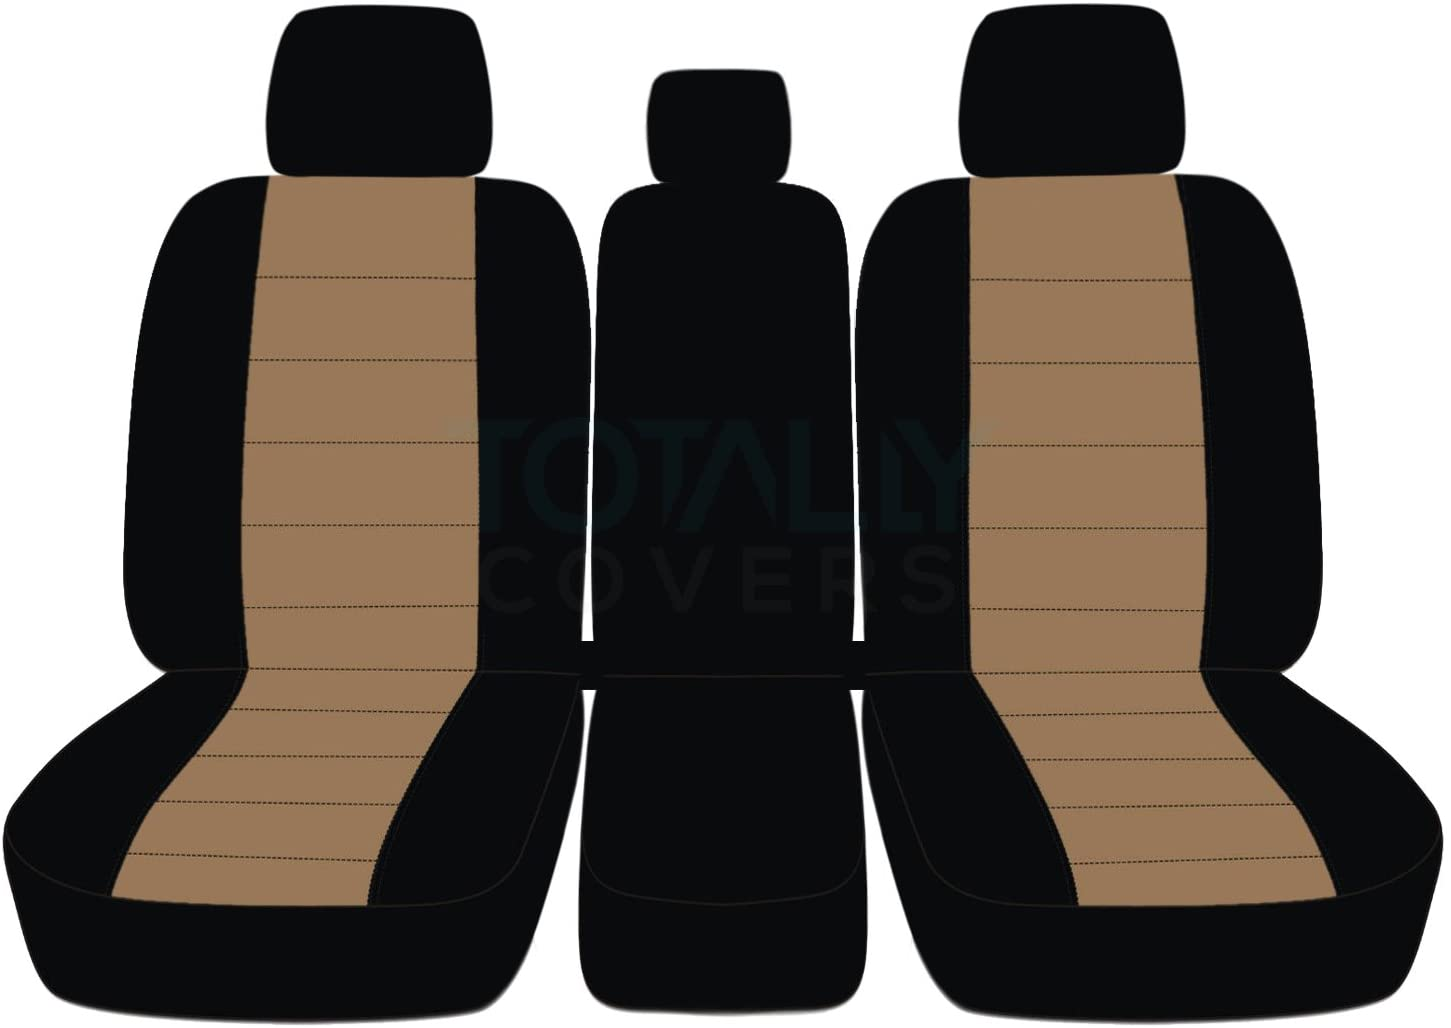 Totally Covers Compatible with 2011-2014 Ford F-150 Two-Tone Truck Seat Covers (Front 40/20/40 Split Bench) w 3 Headrests, Opening Center Console/Solid Armrest: Black, Brown (21 Colors) F-Series F150